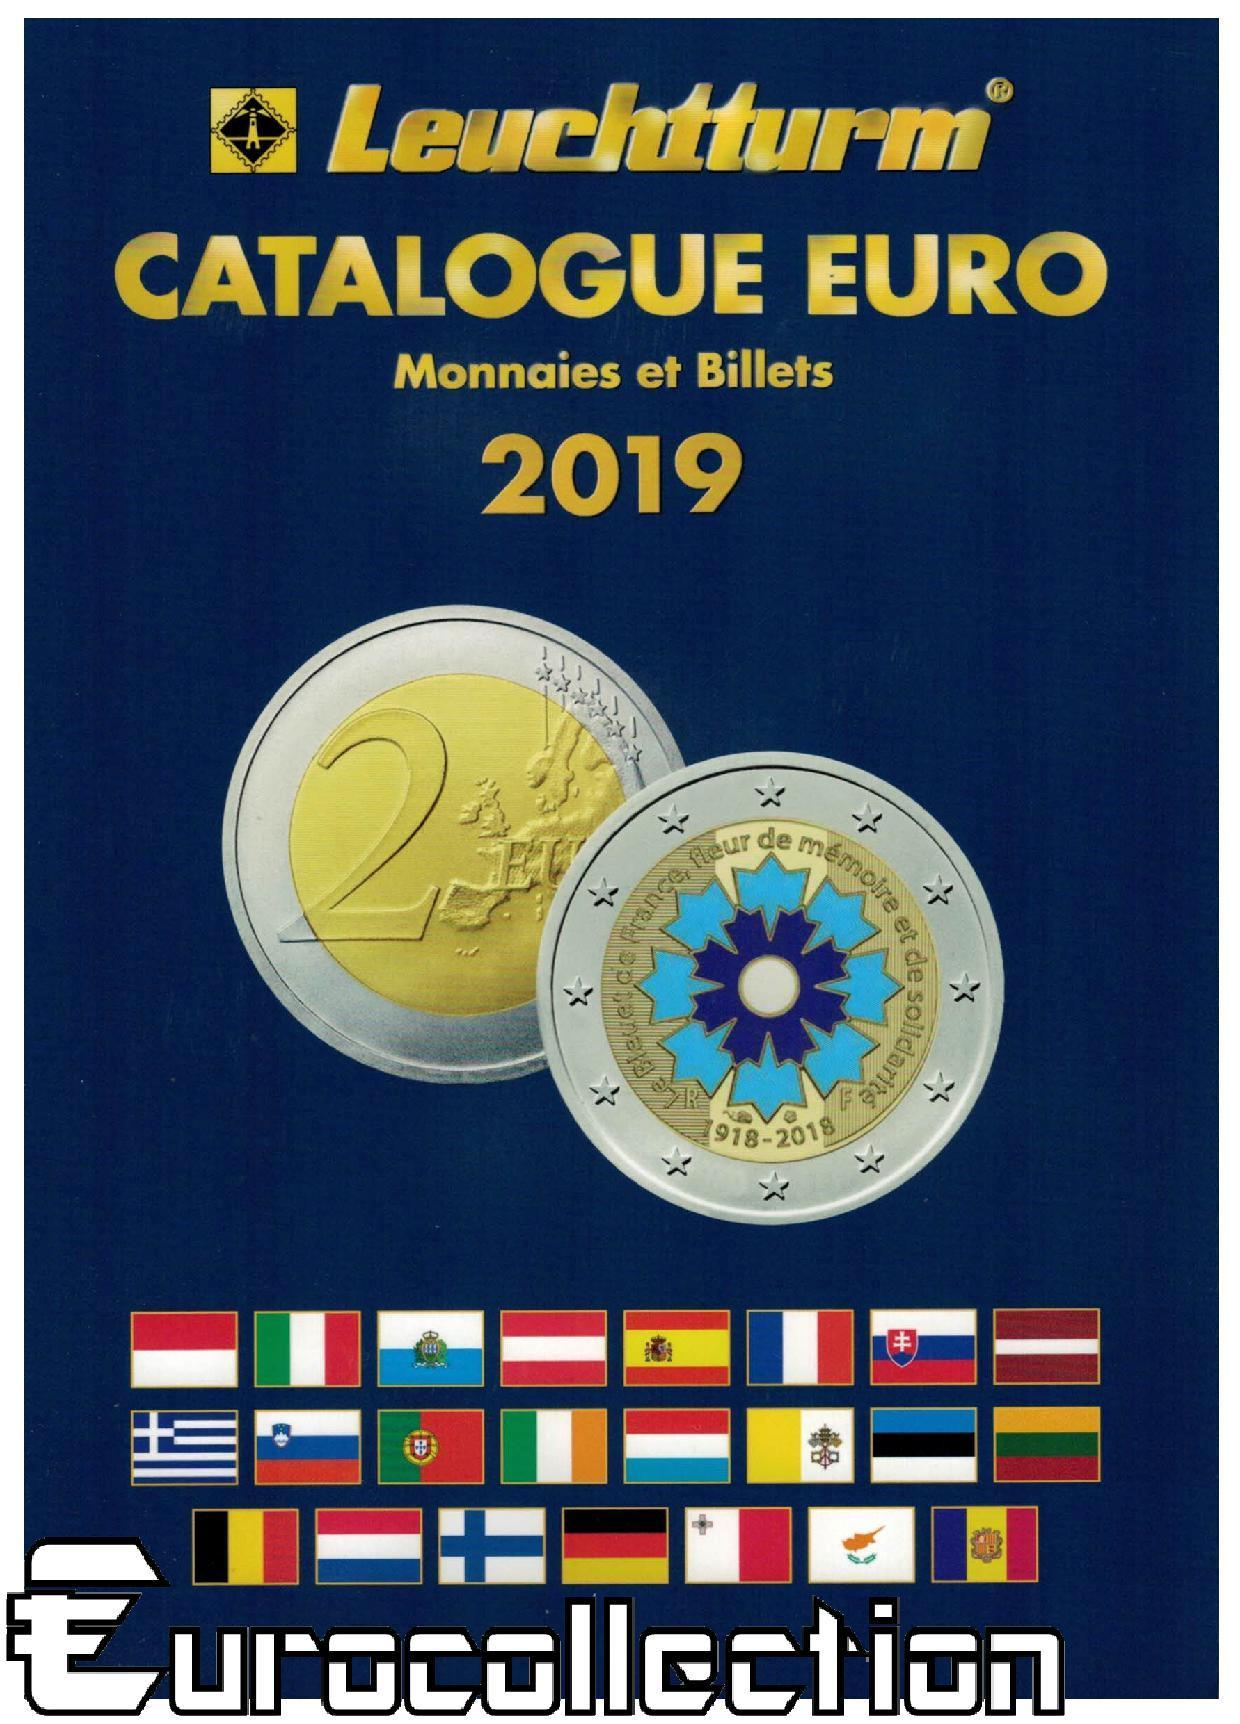 Catalogue_euro_2019_Leuchtturm_Erocollection